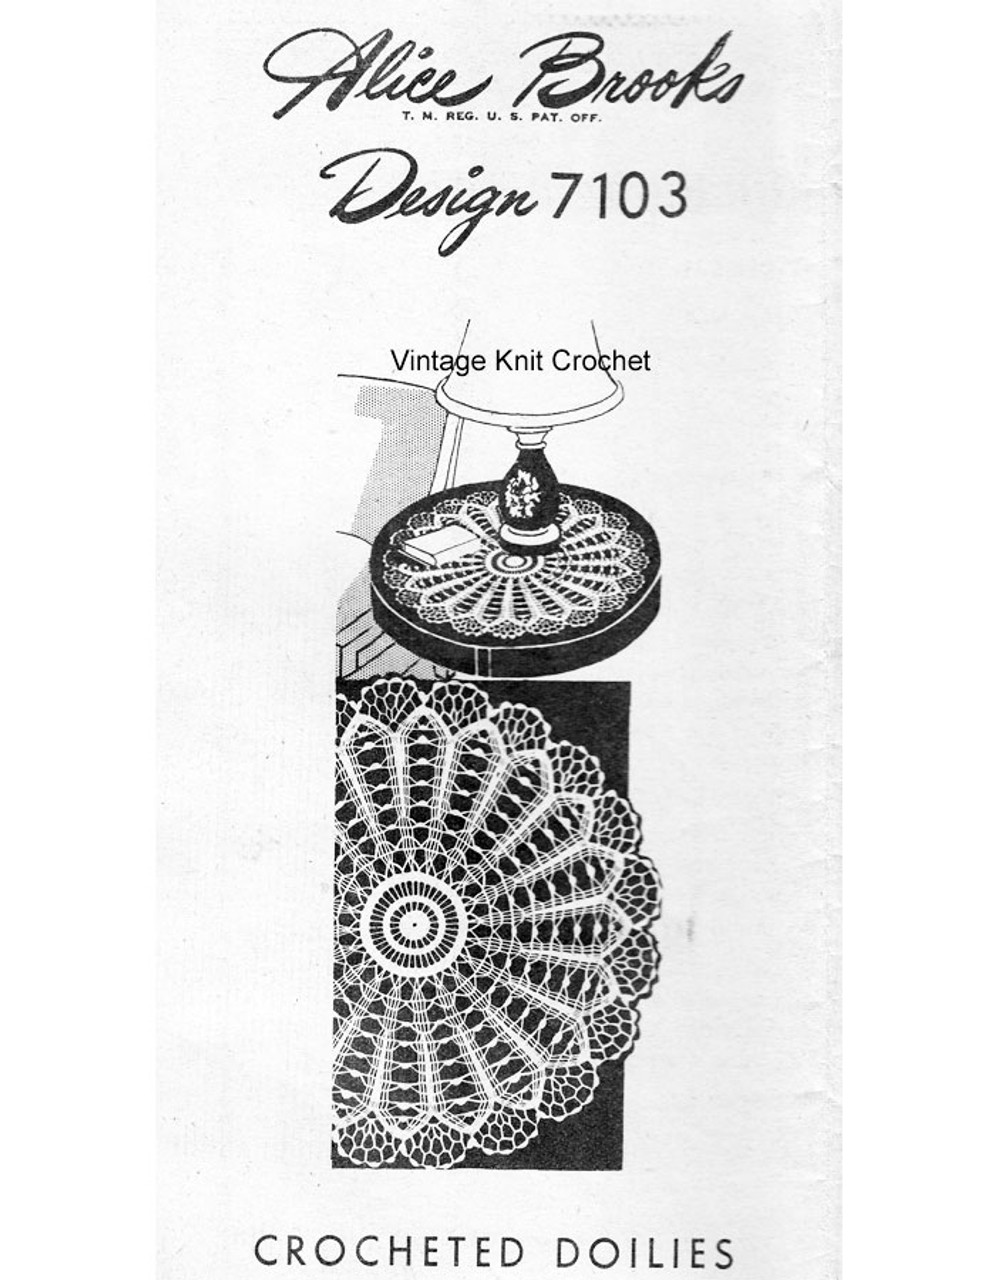 Wheel Doily Crochet Pattern, Alice Brooks 7103